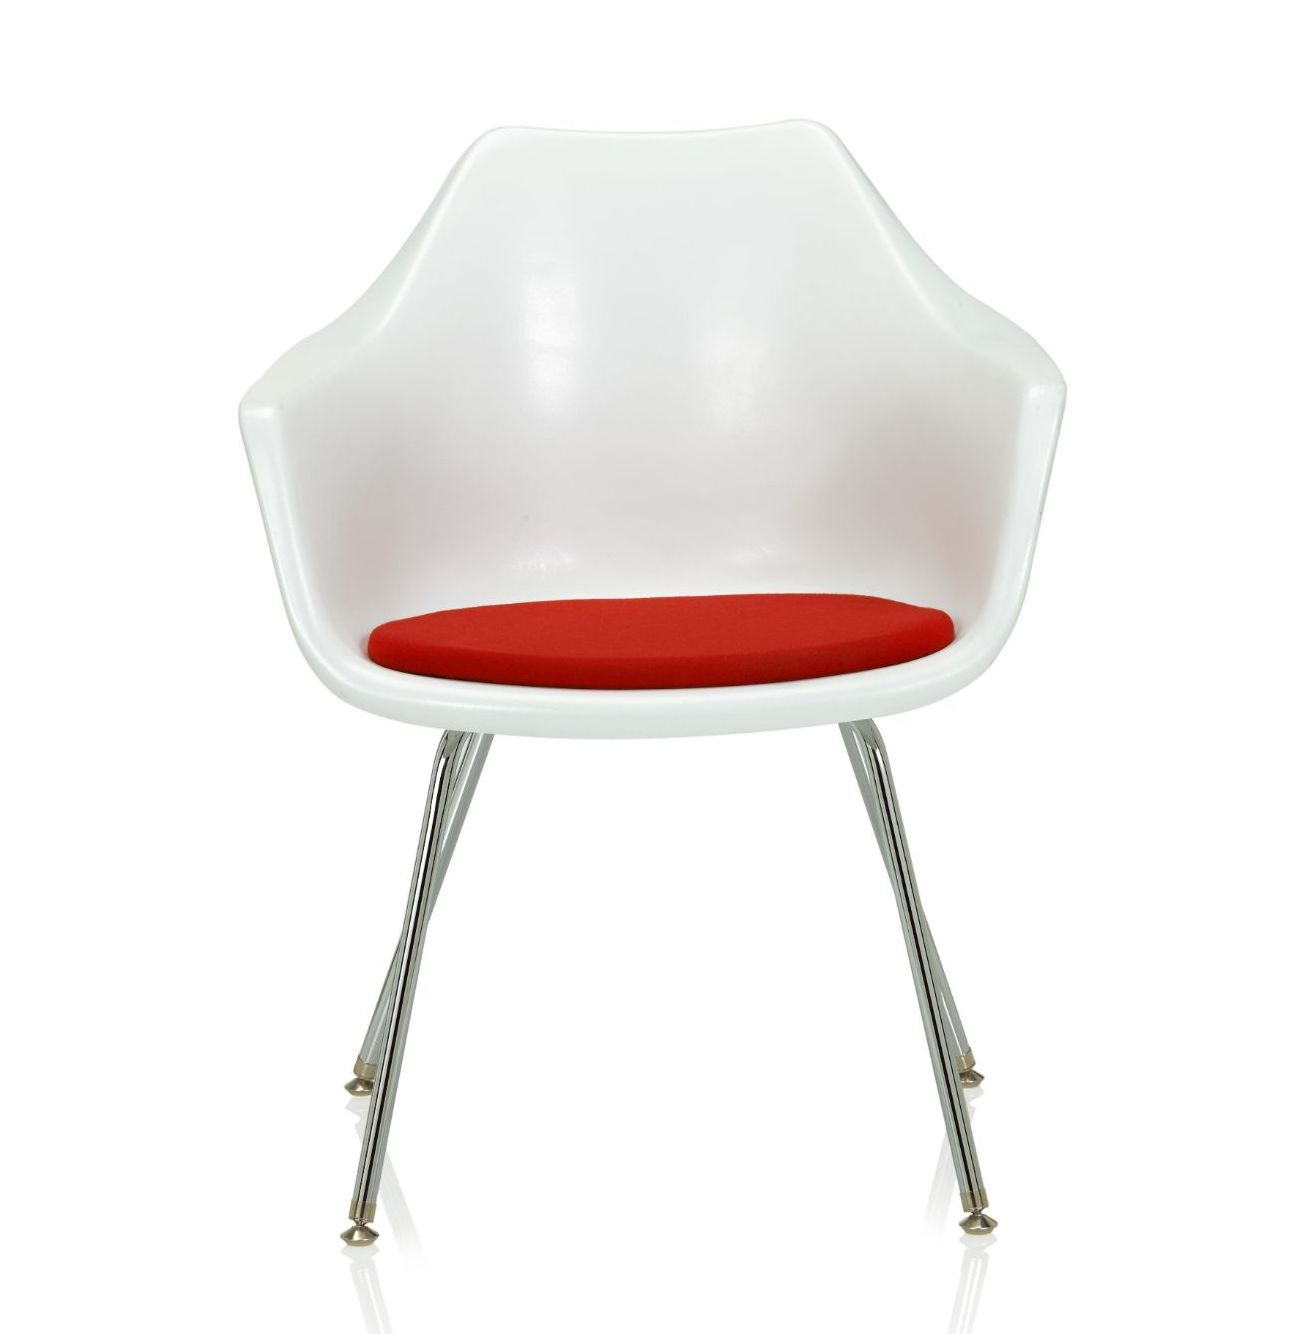 ki jubi guest chair - front view